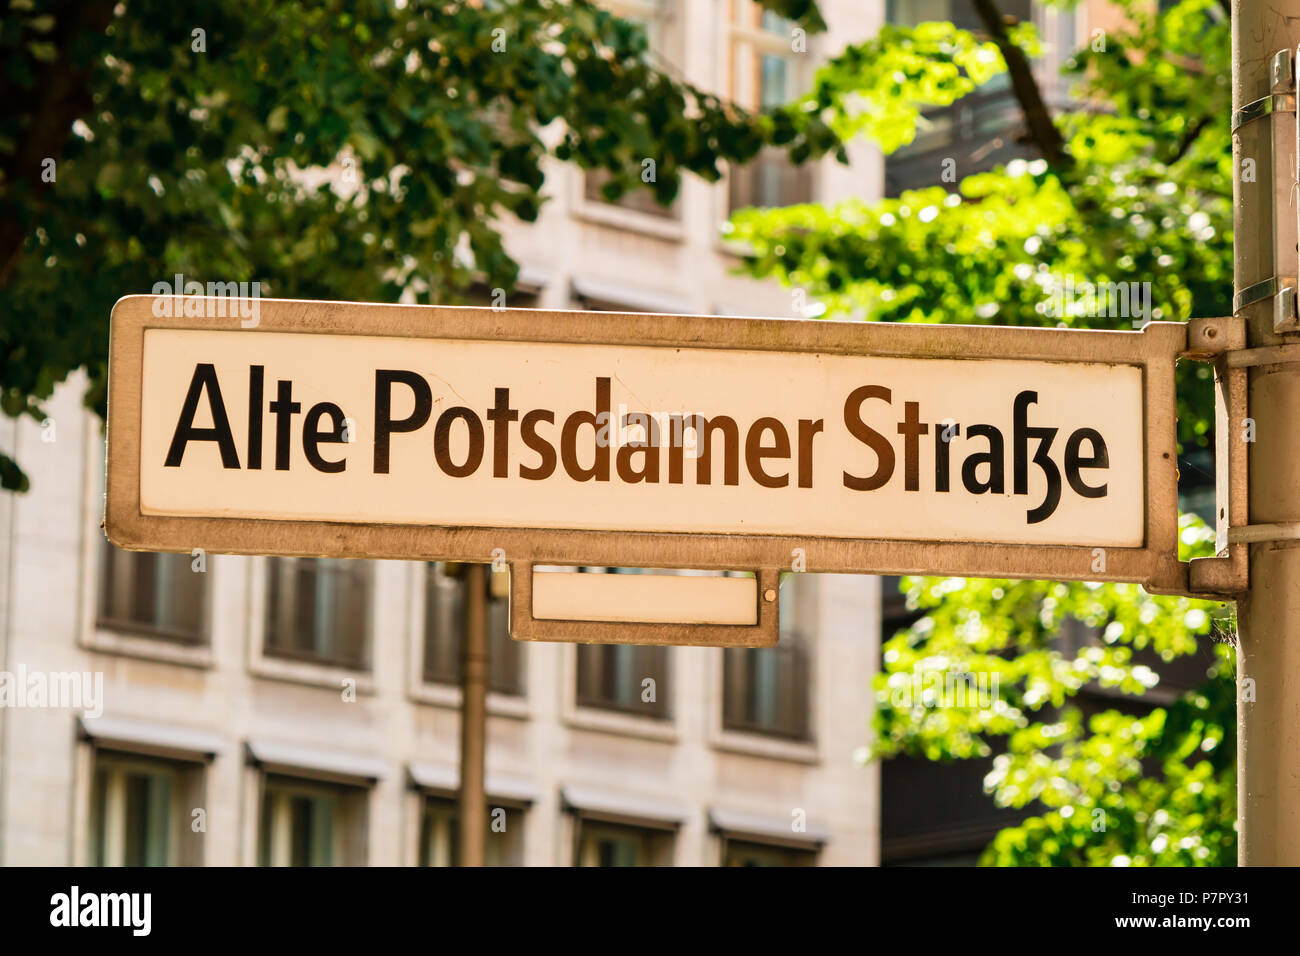 Historic Berlin famous street sign of the Alte Postdamer Strasse. - Stock Image